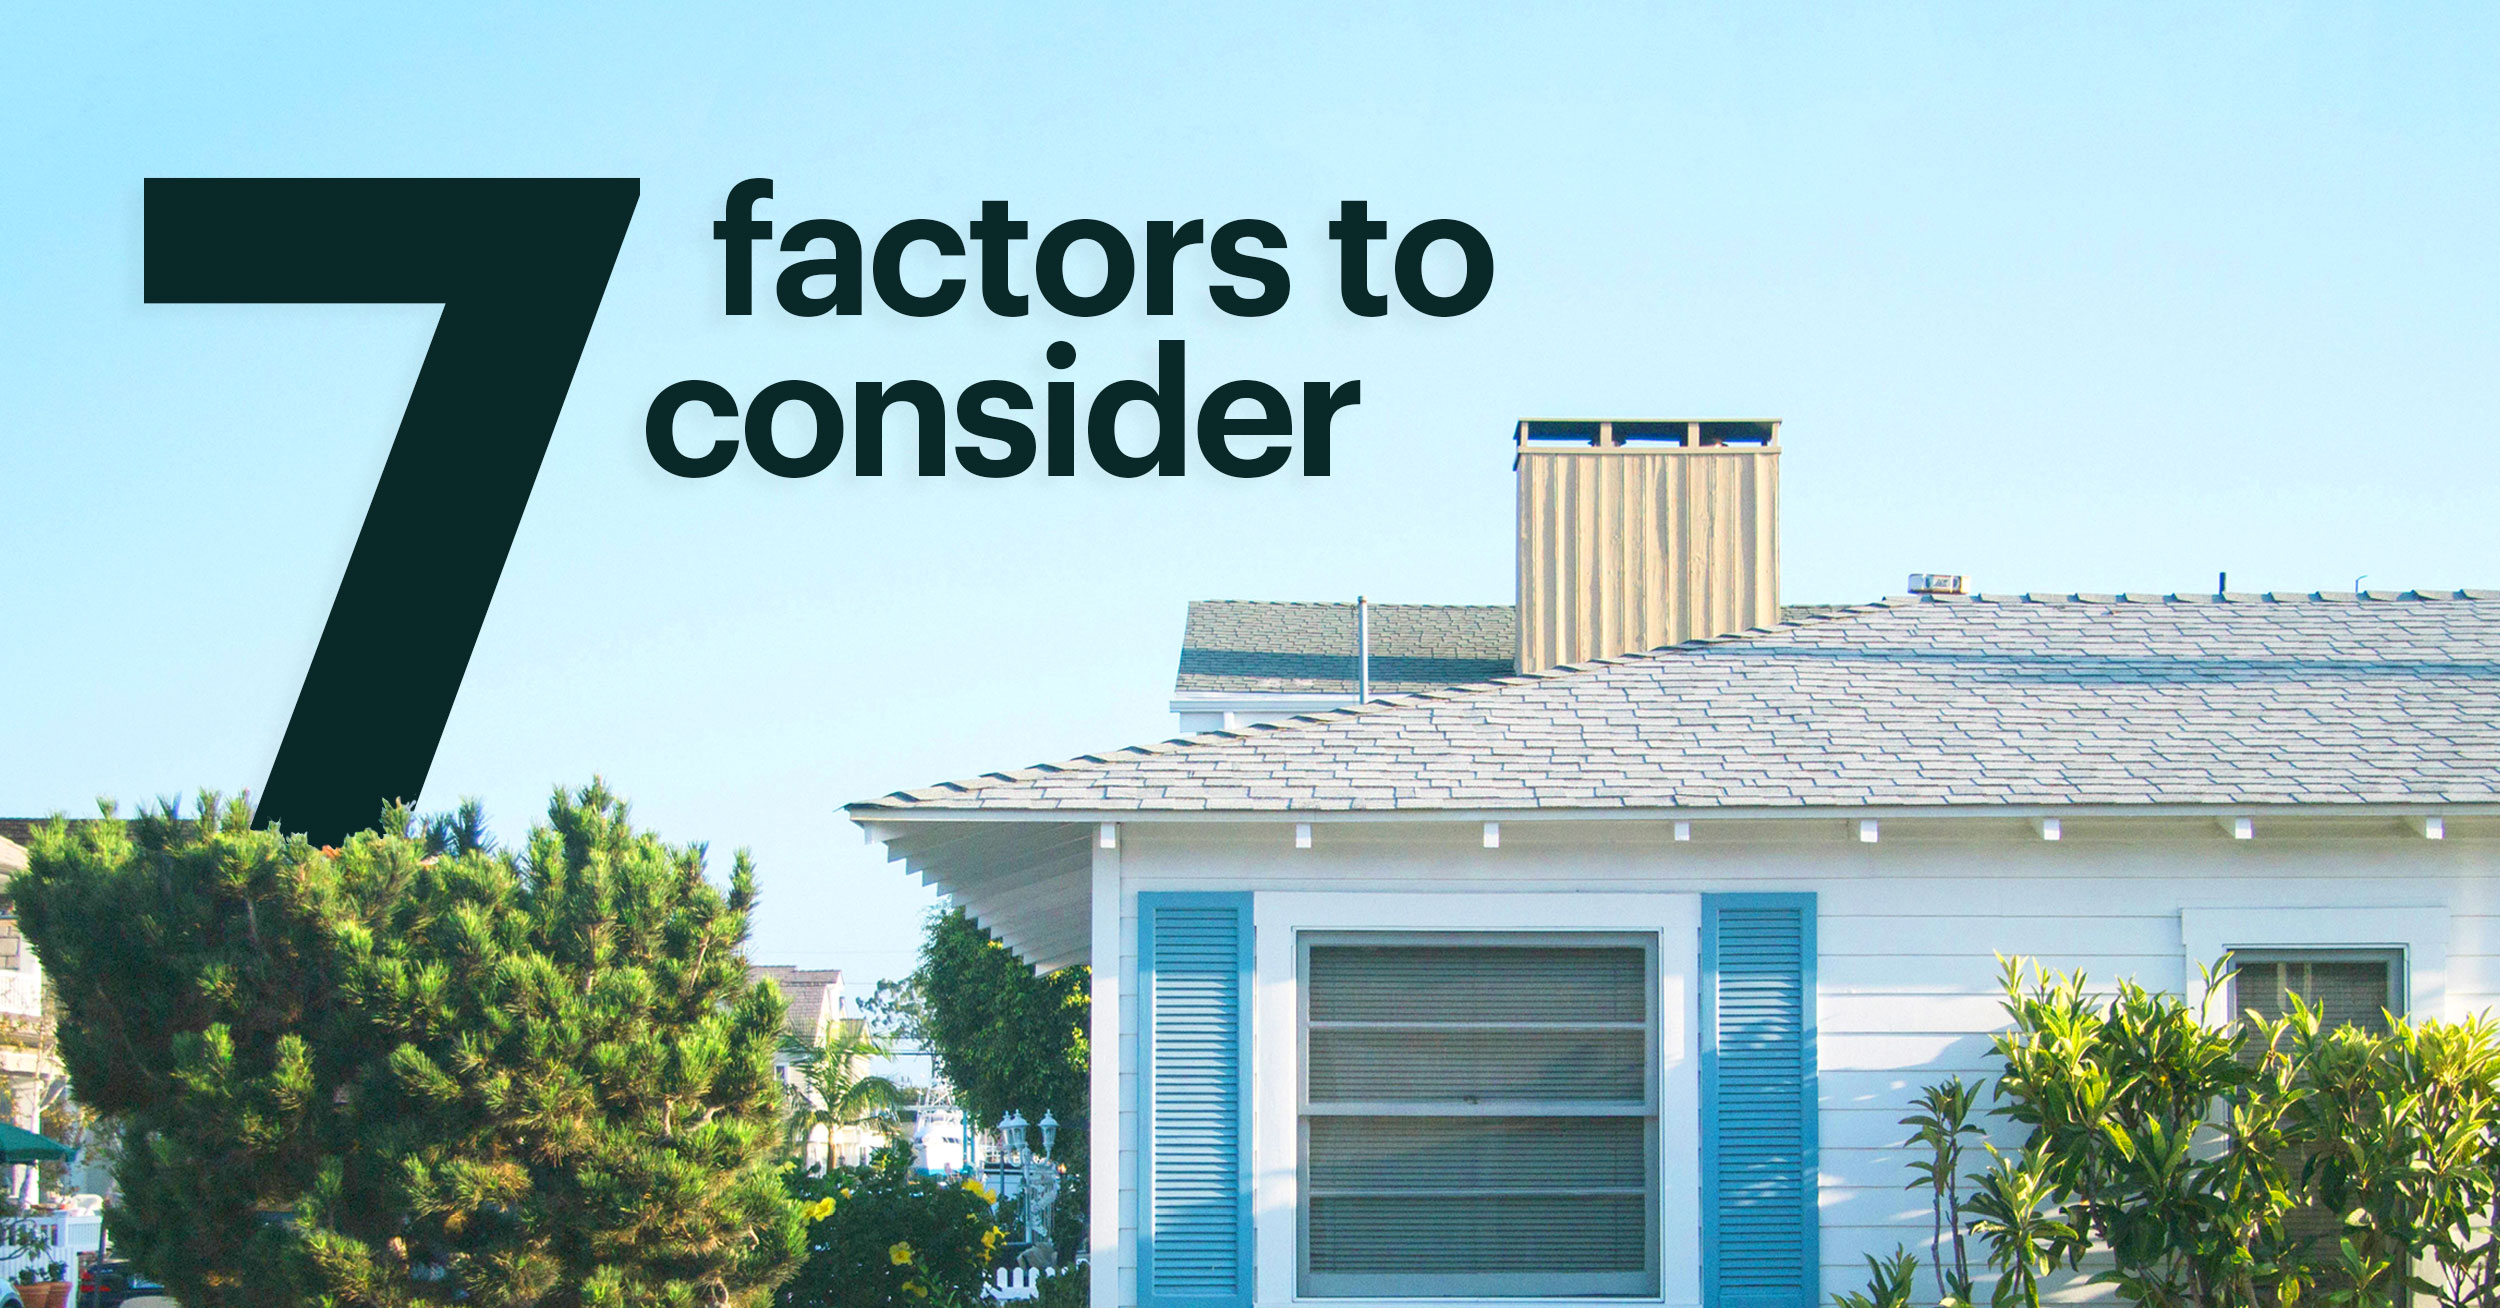 Blue Bungalow Style Home Against Blue Sky with Text That Reads: 7 Factors to Consider